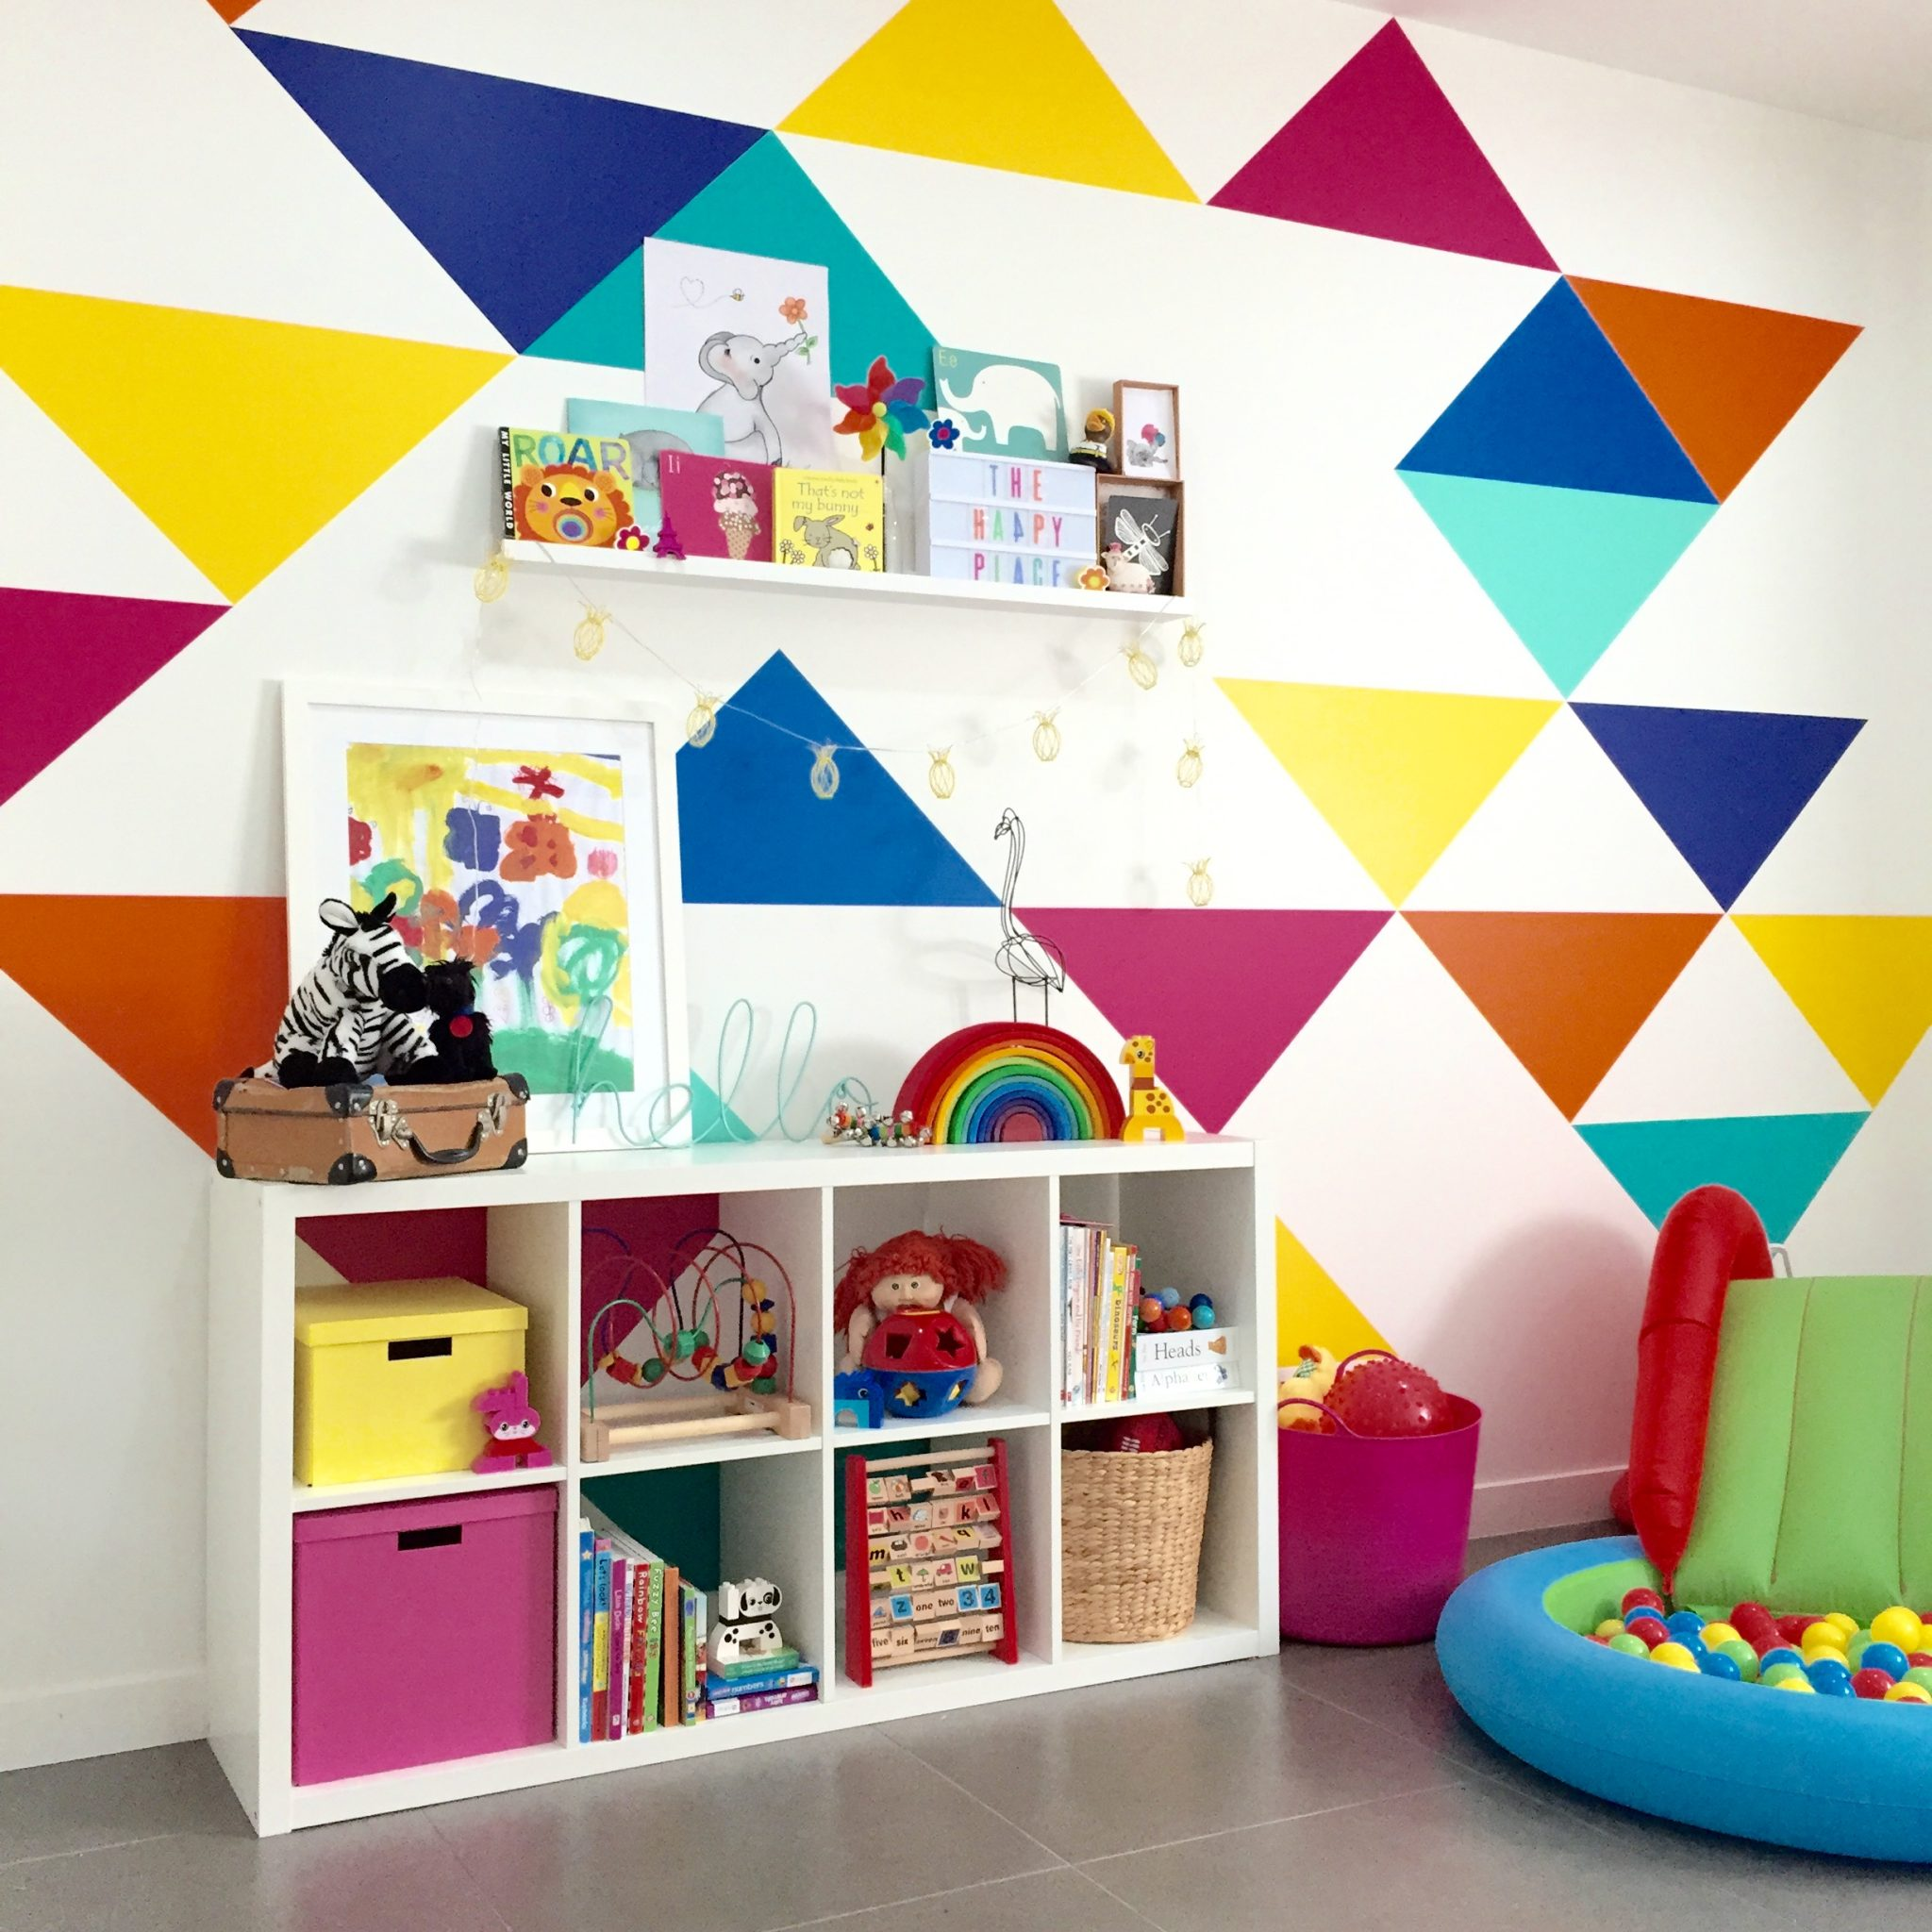 Popular As well as designing geometric shapes and quotes a lot of her decals are brought about by customer demand Meaning if you have an idea there us a good